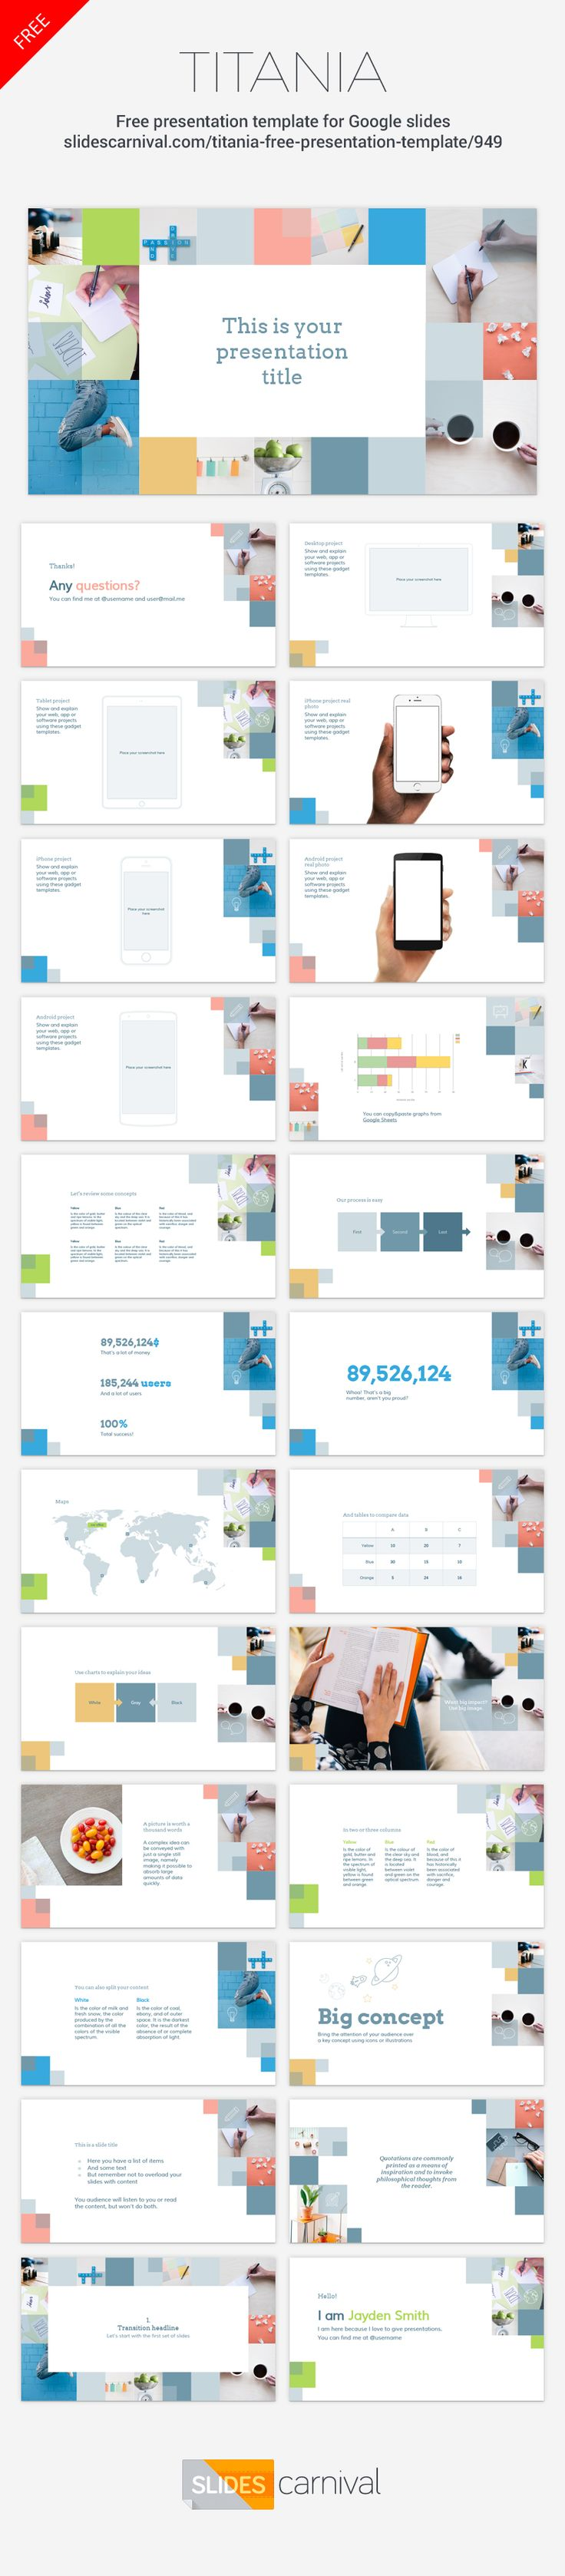 best images about presentation design inspiration positive colorful and professional this presentation template suits a great variety of topics works great for presentations that are going to be